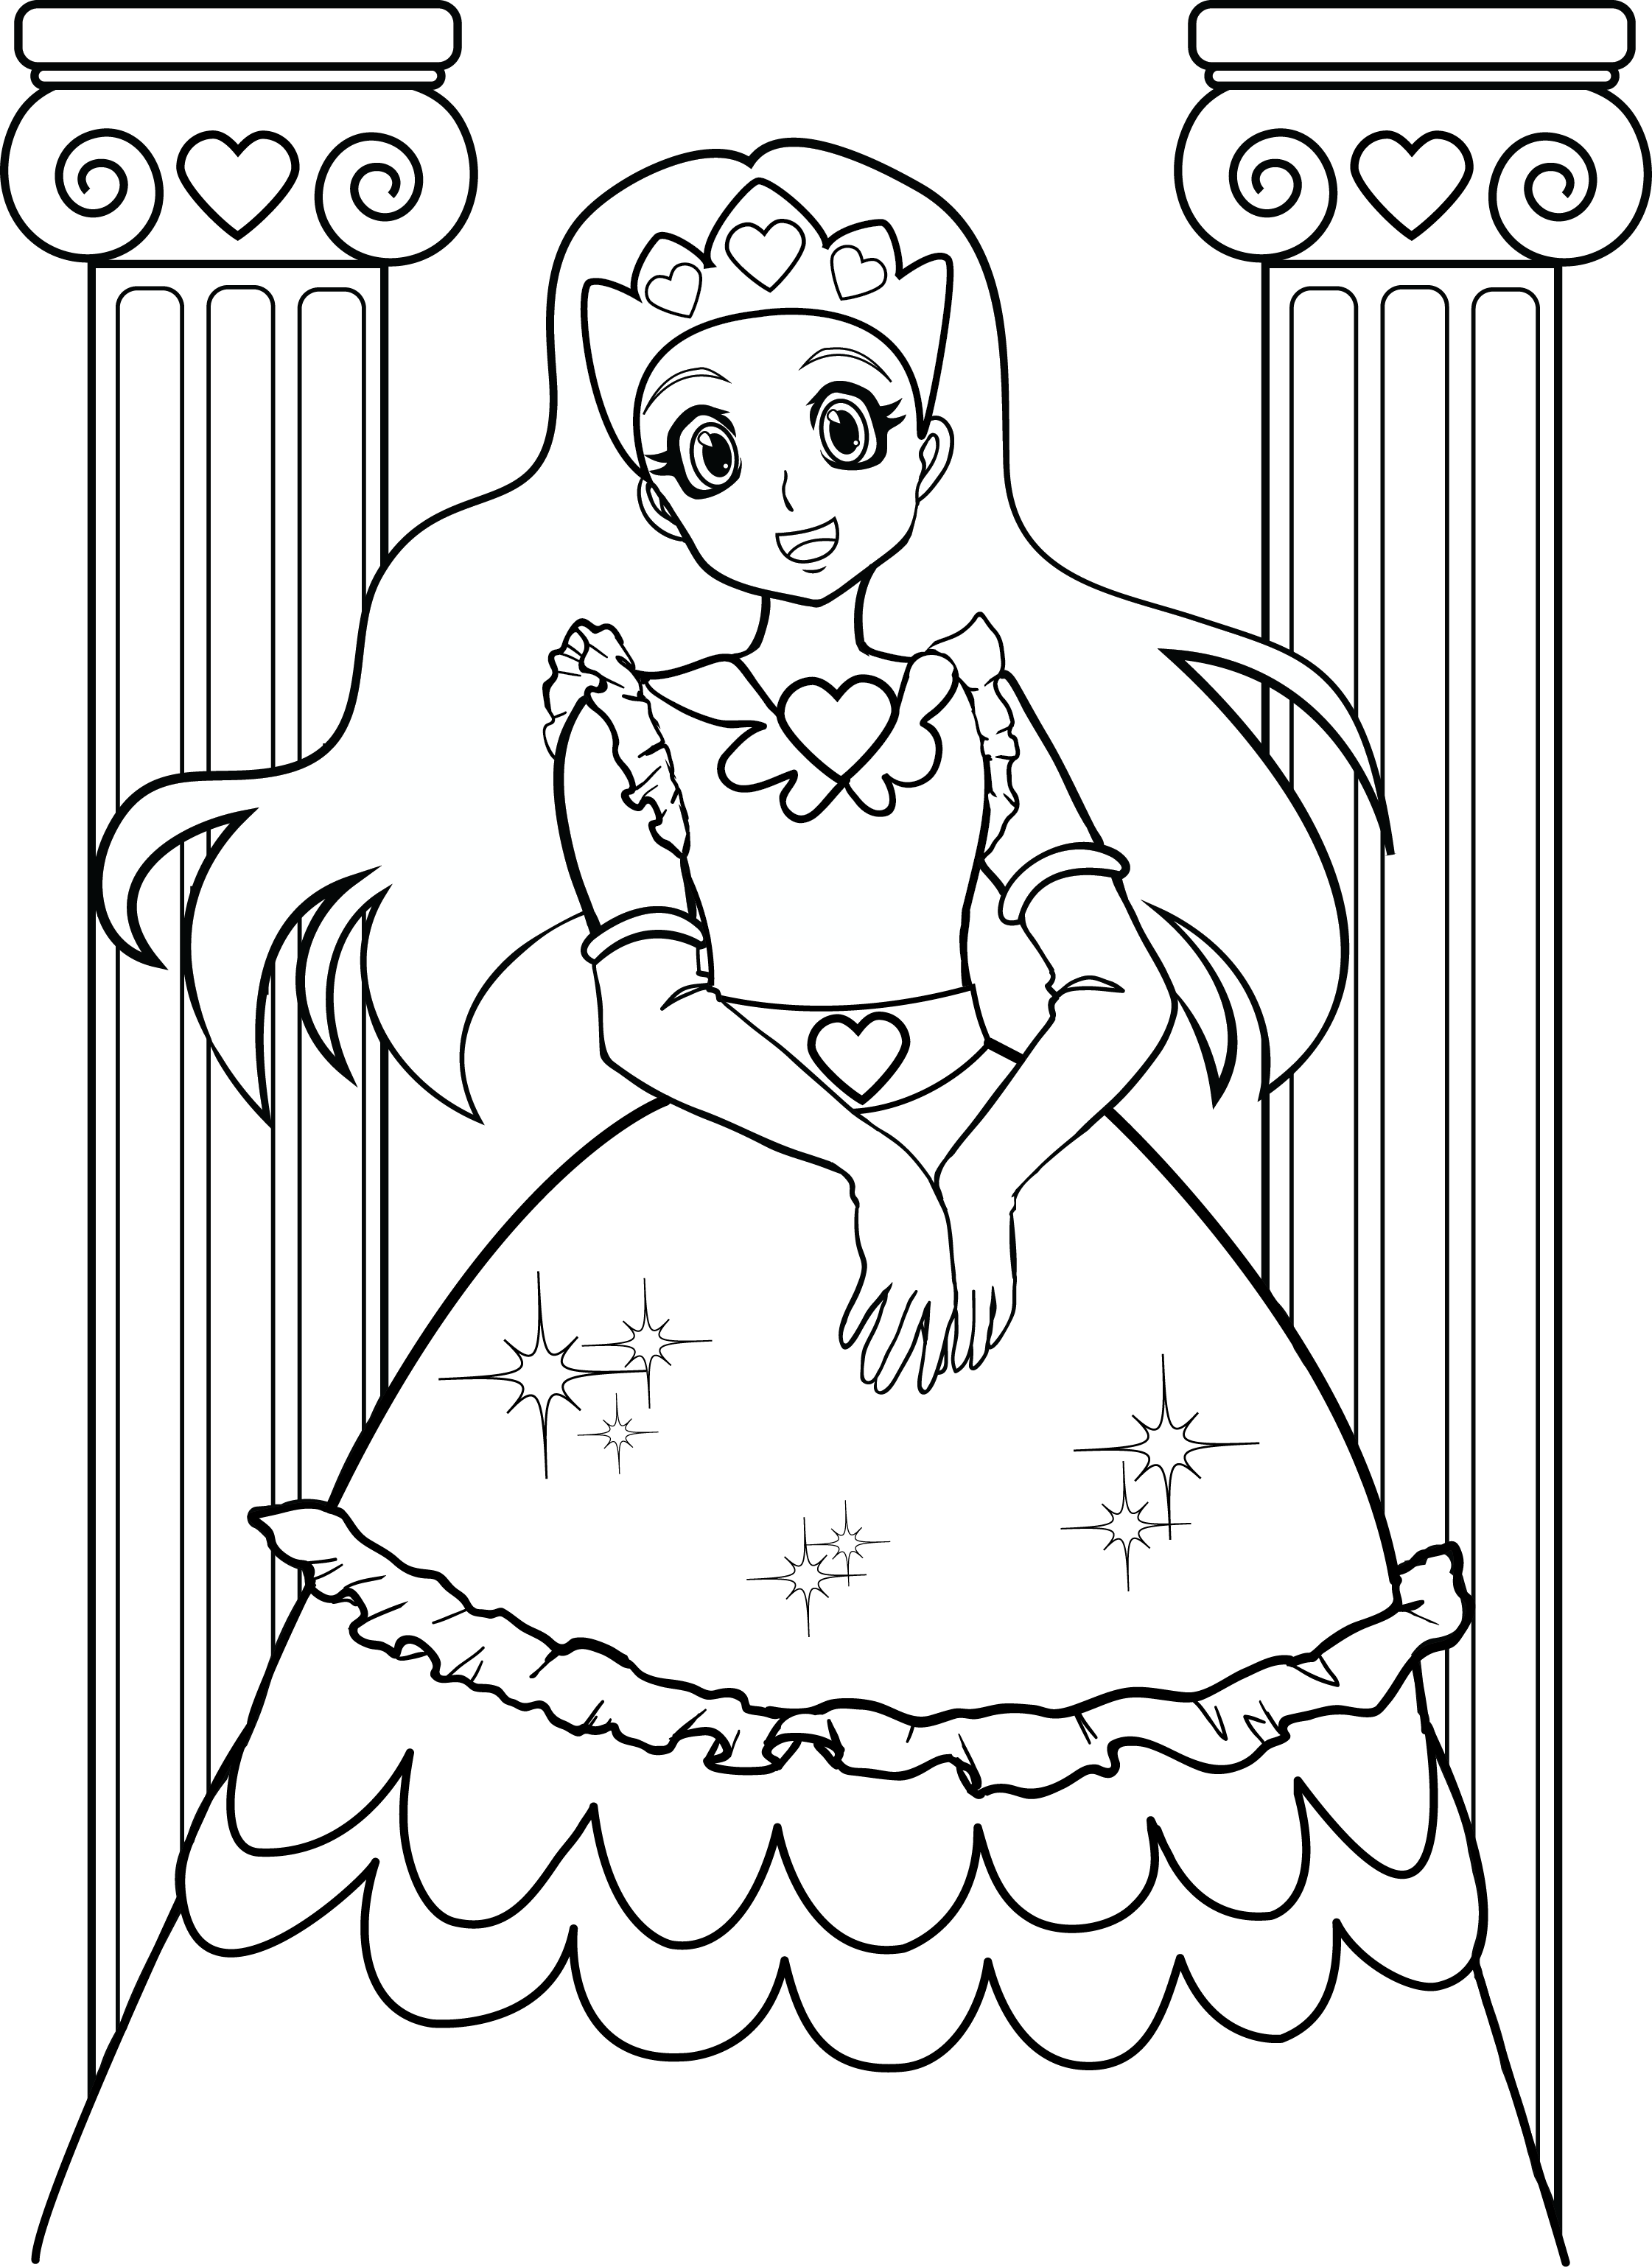 Coloring Pages For Girls (7) | Coloring Kids